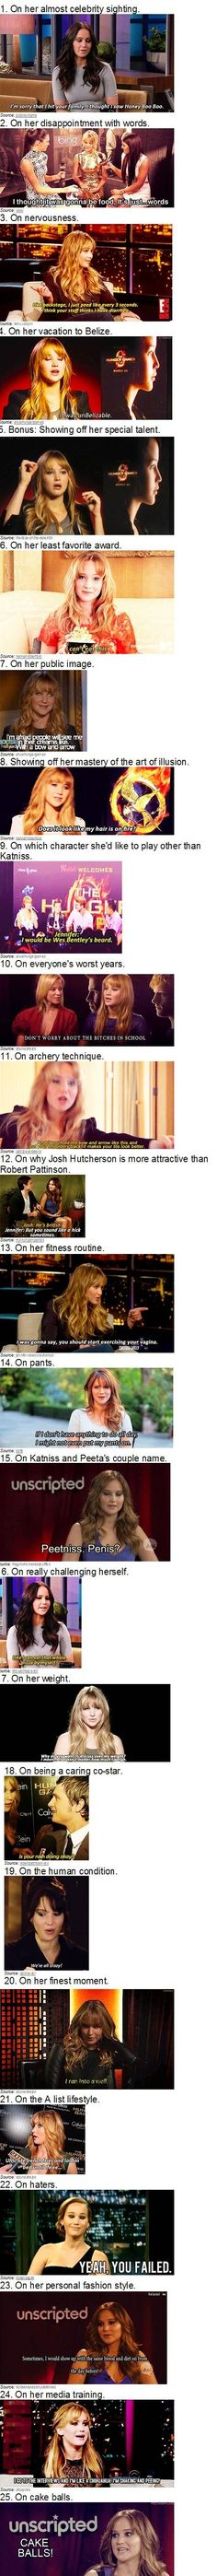 Jennifer Lawrence is hilarious. I just really want to be her friend.